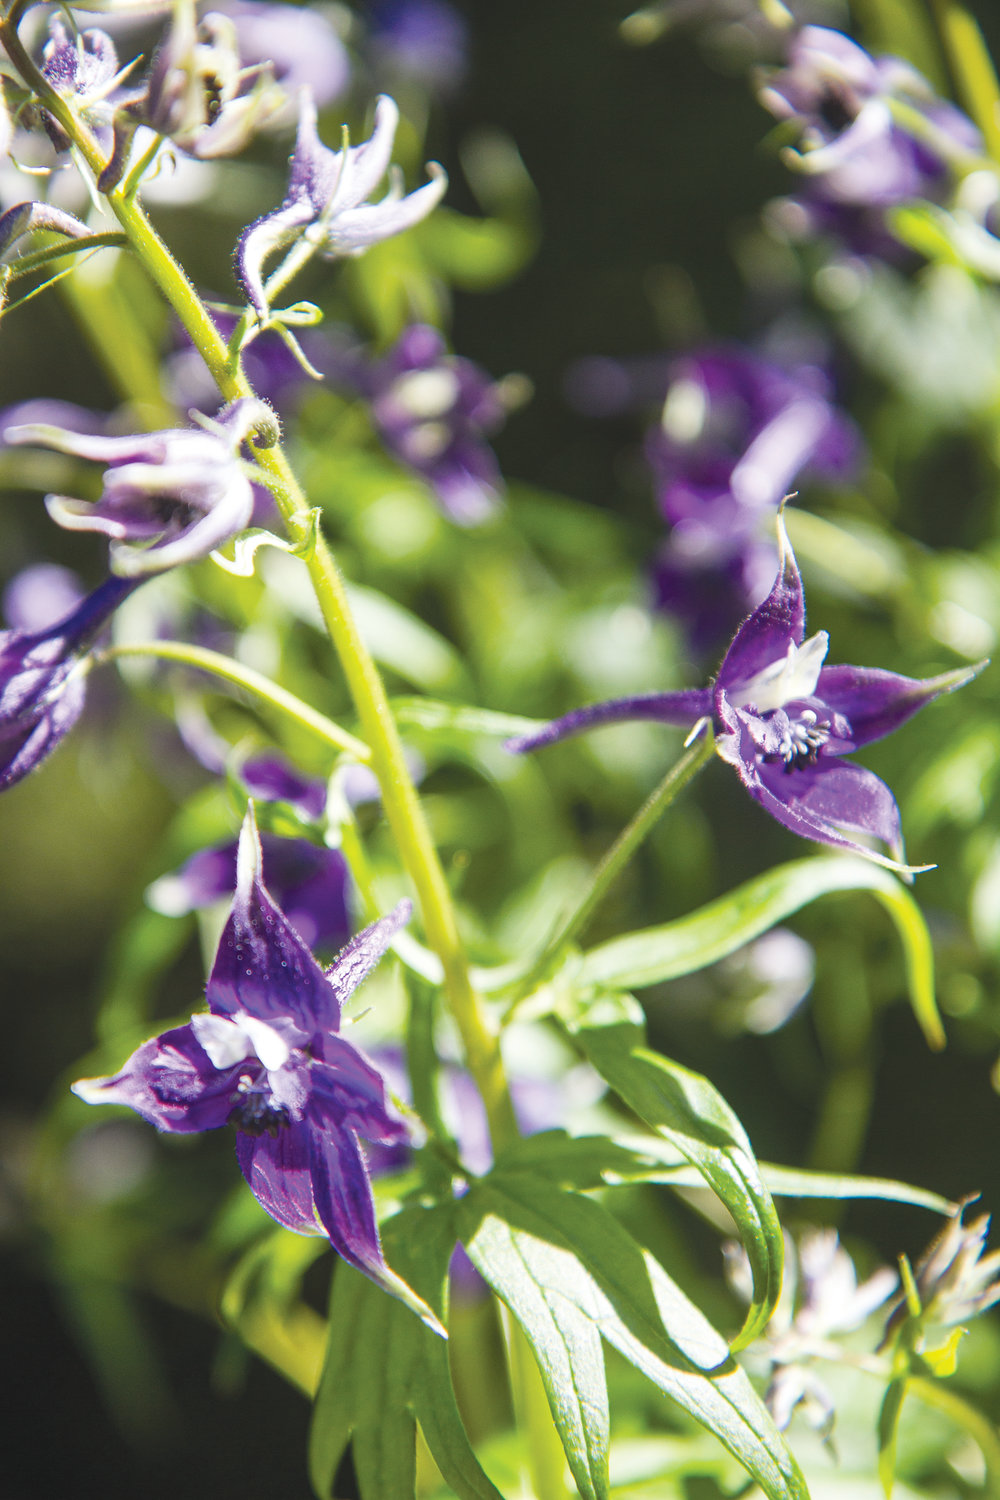 Columbian larkspur is a leafy herbaceous perennial that blooms in late spring to early summer.